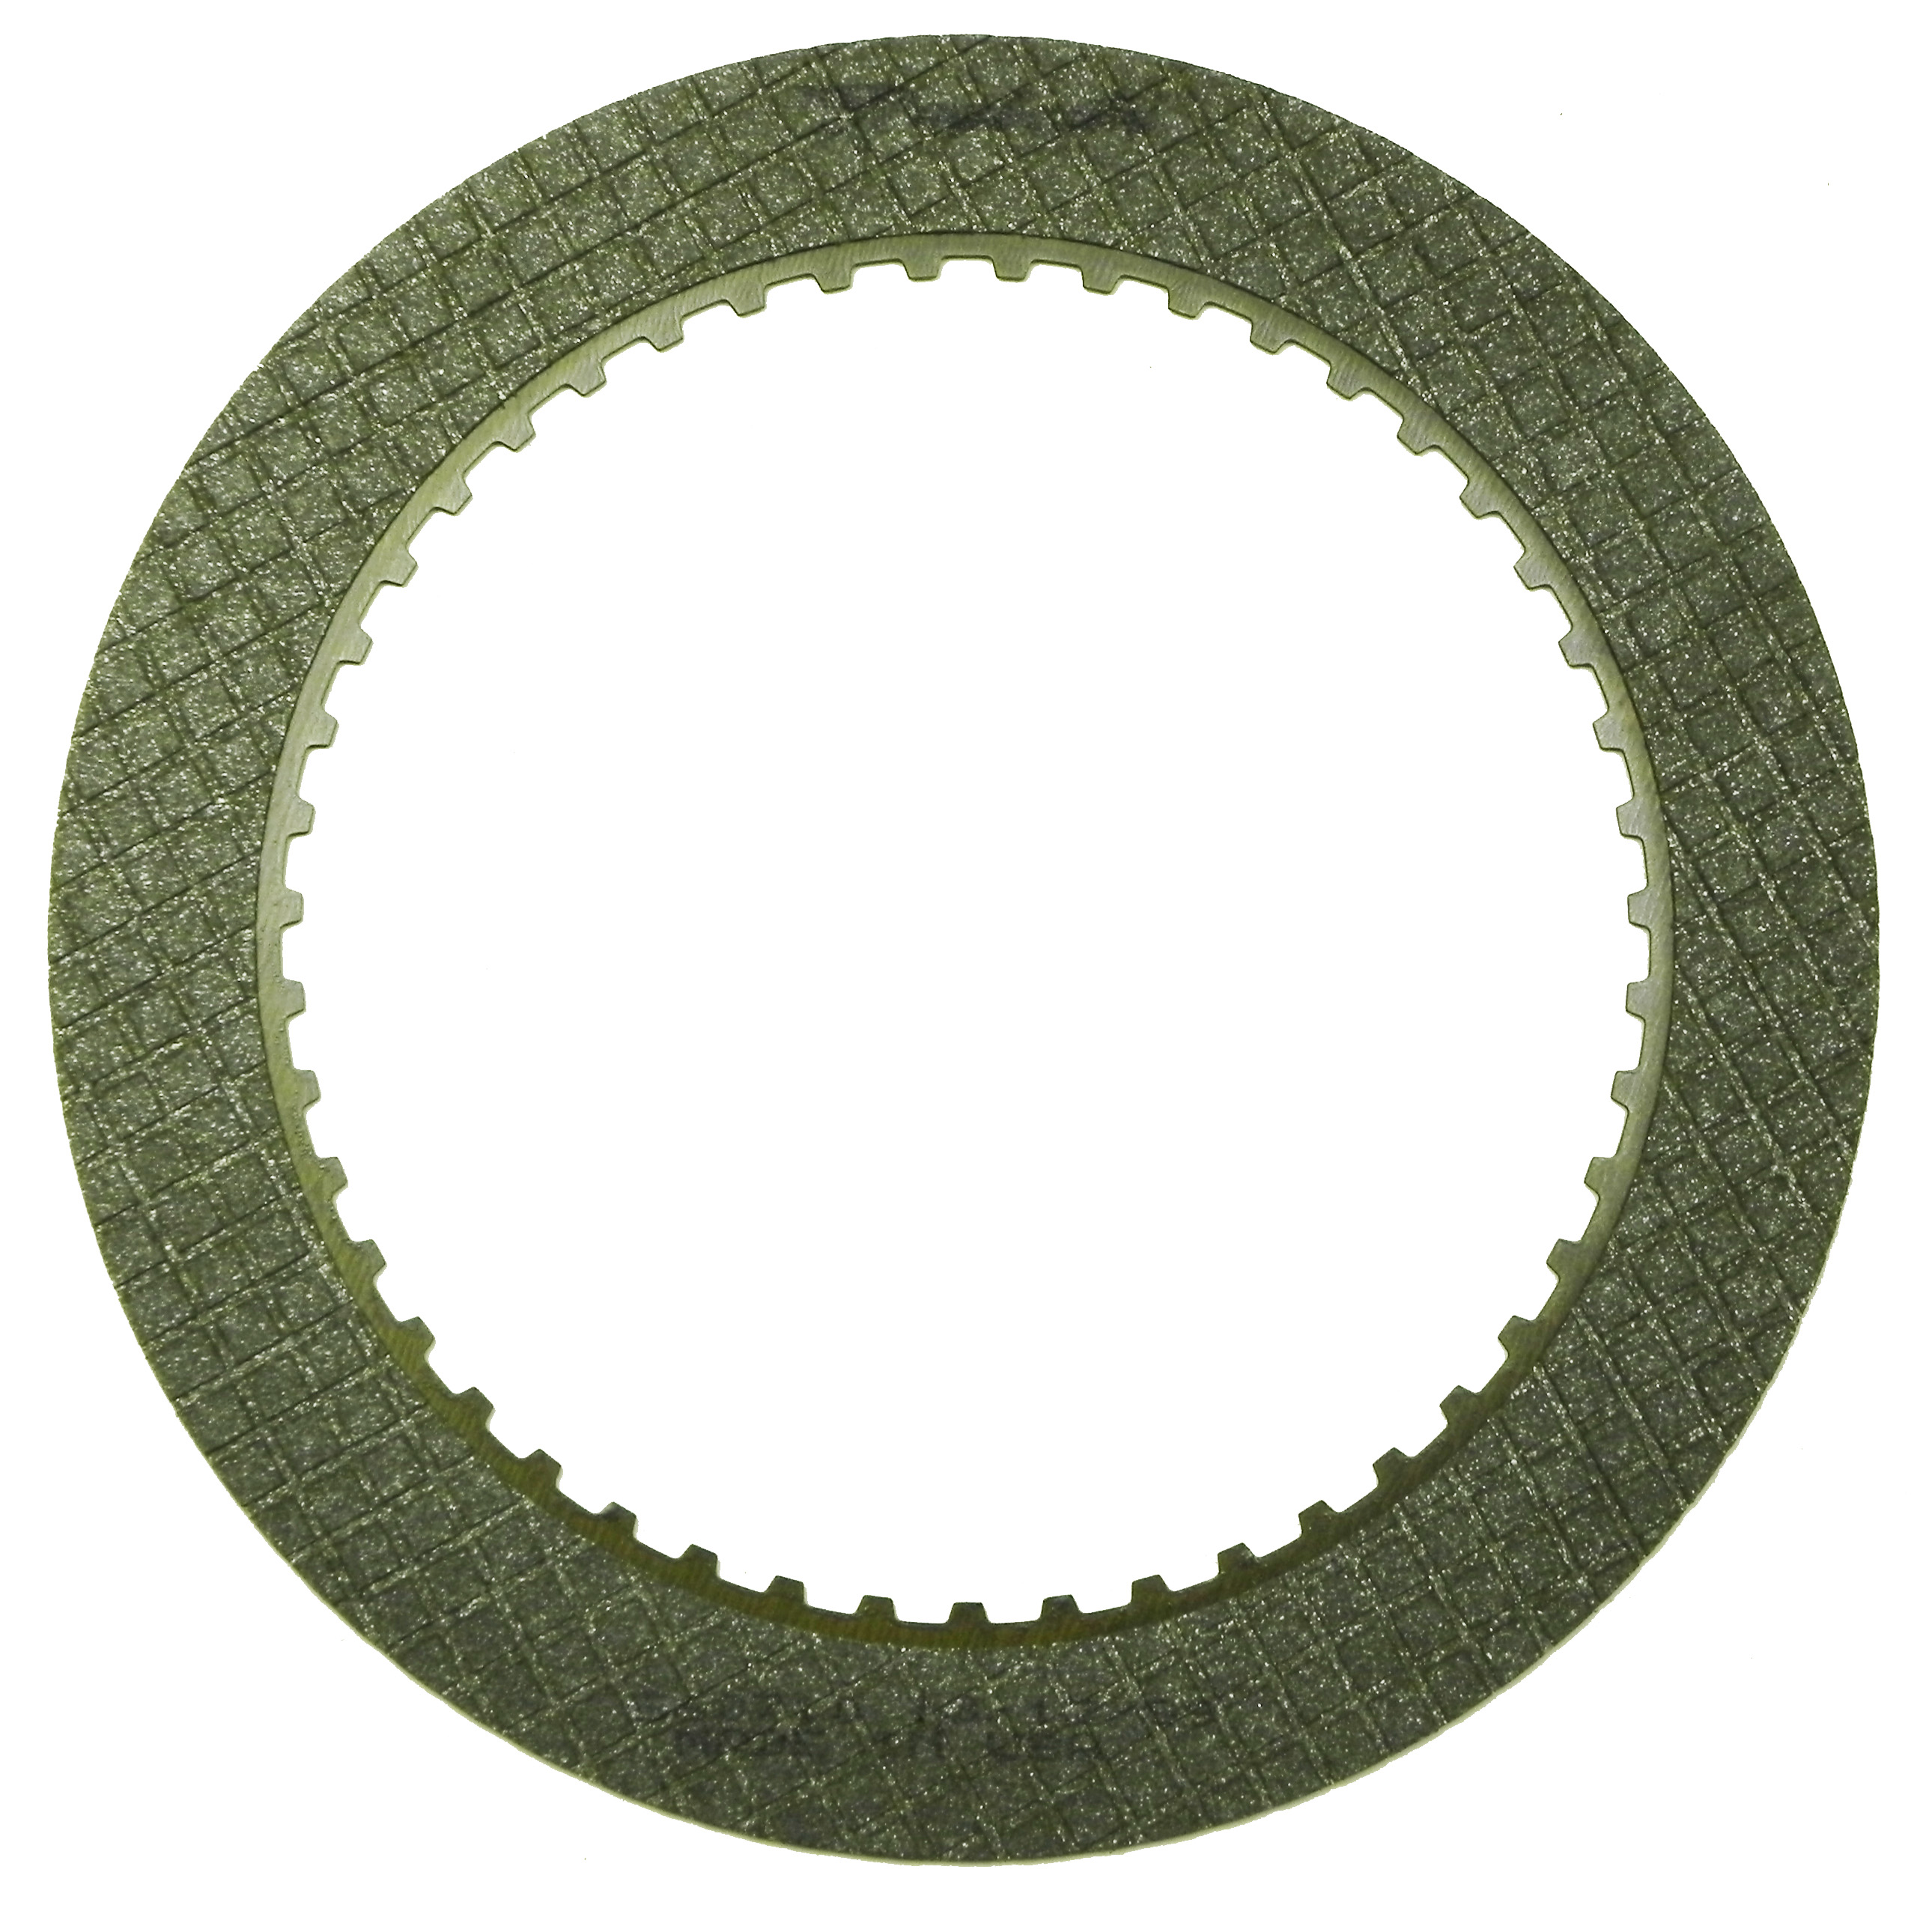 R560710 | 1964-1990 Friction Clutch Plate Graphitic Intermediate Graphitic